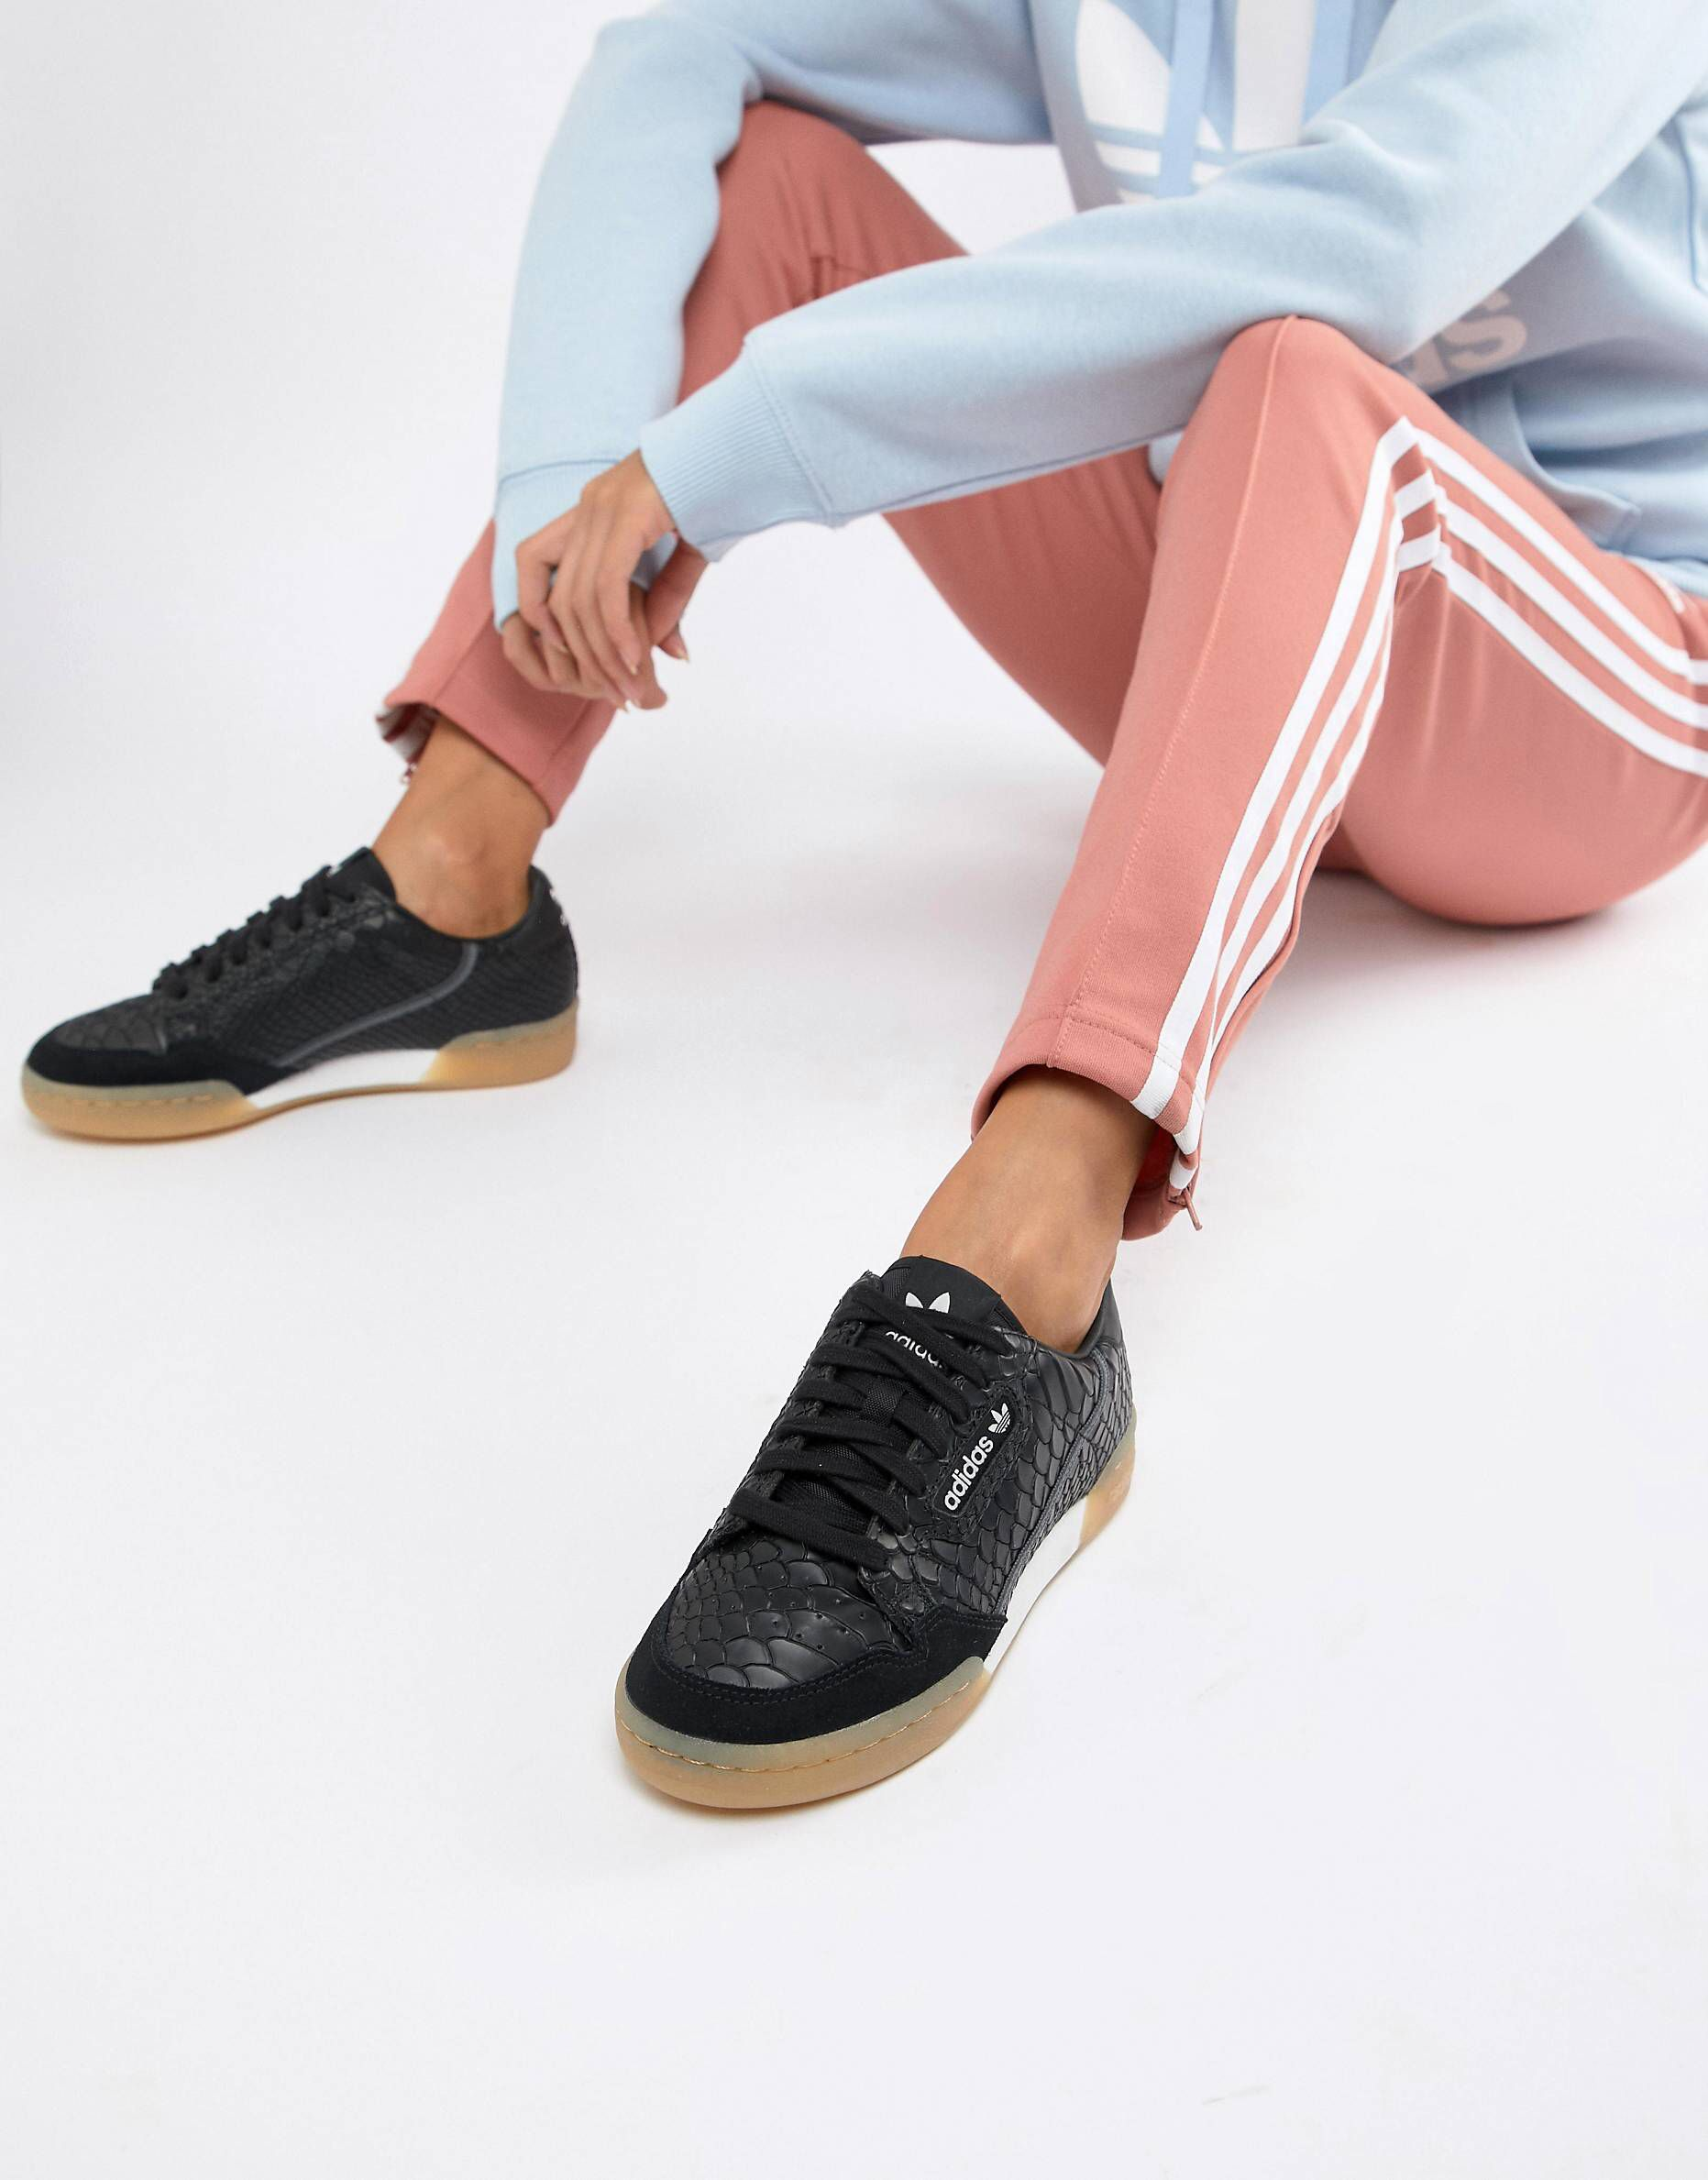 adidas Originals Continental 80's Sneakers In Black With Gum ...